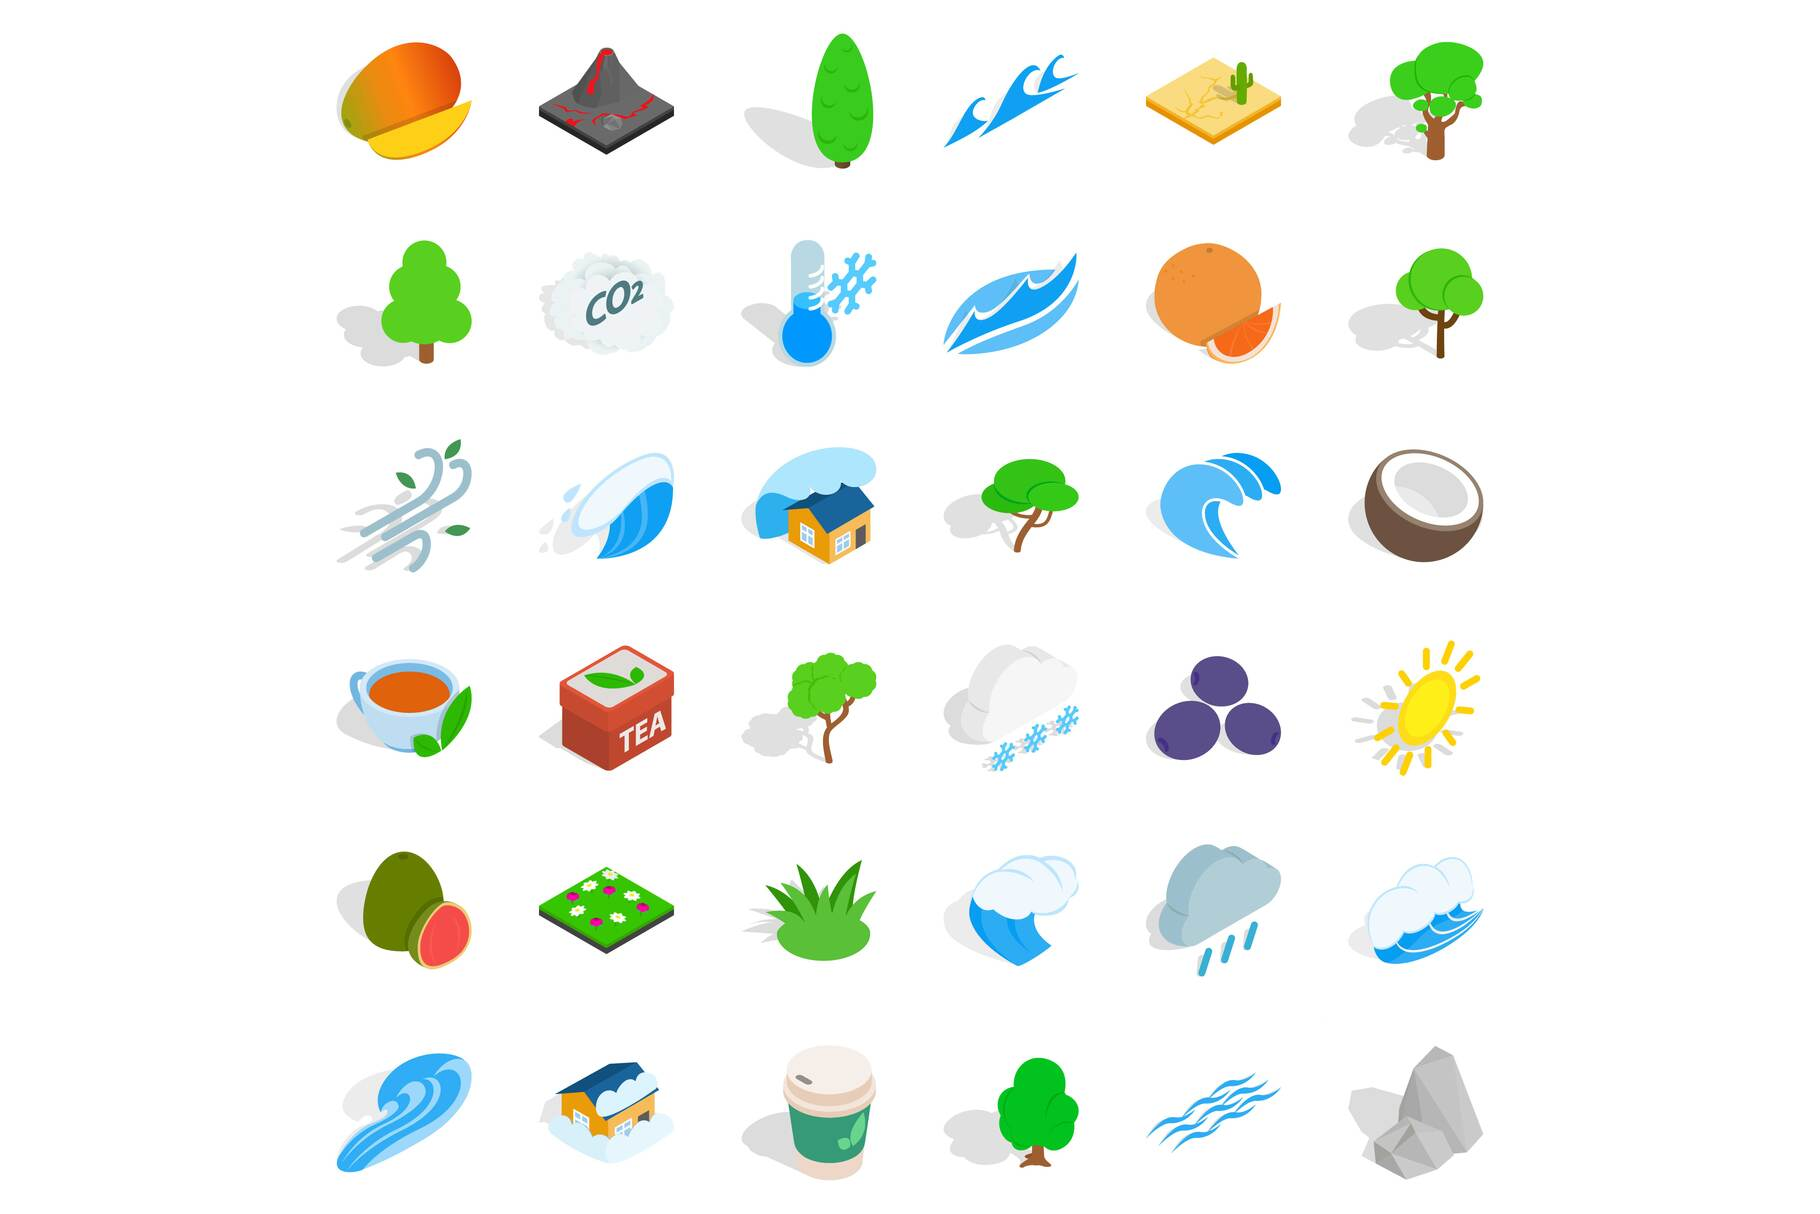 Garden tree icons set, isometric style example image 1